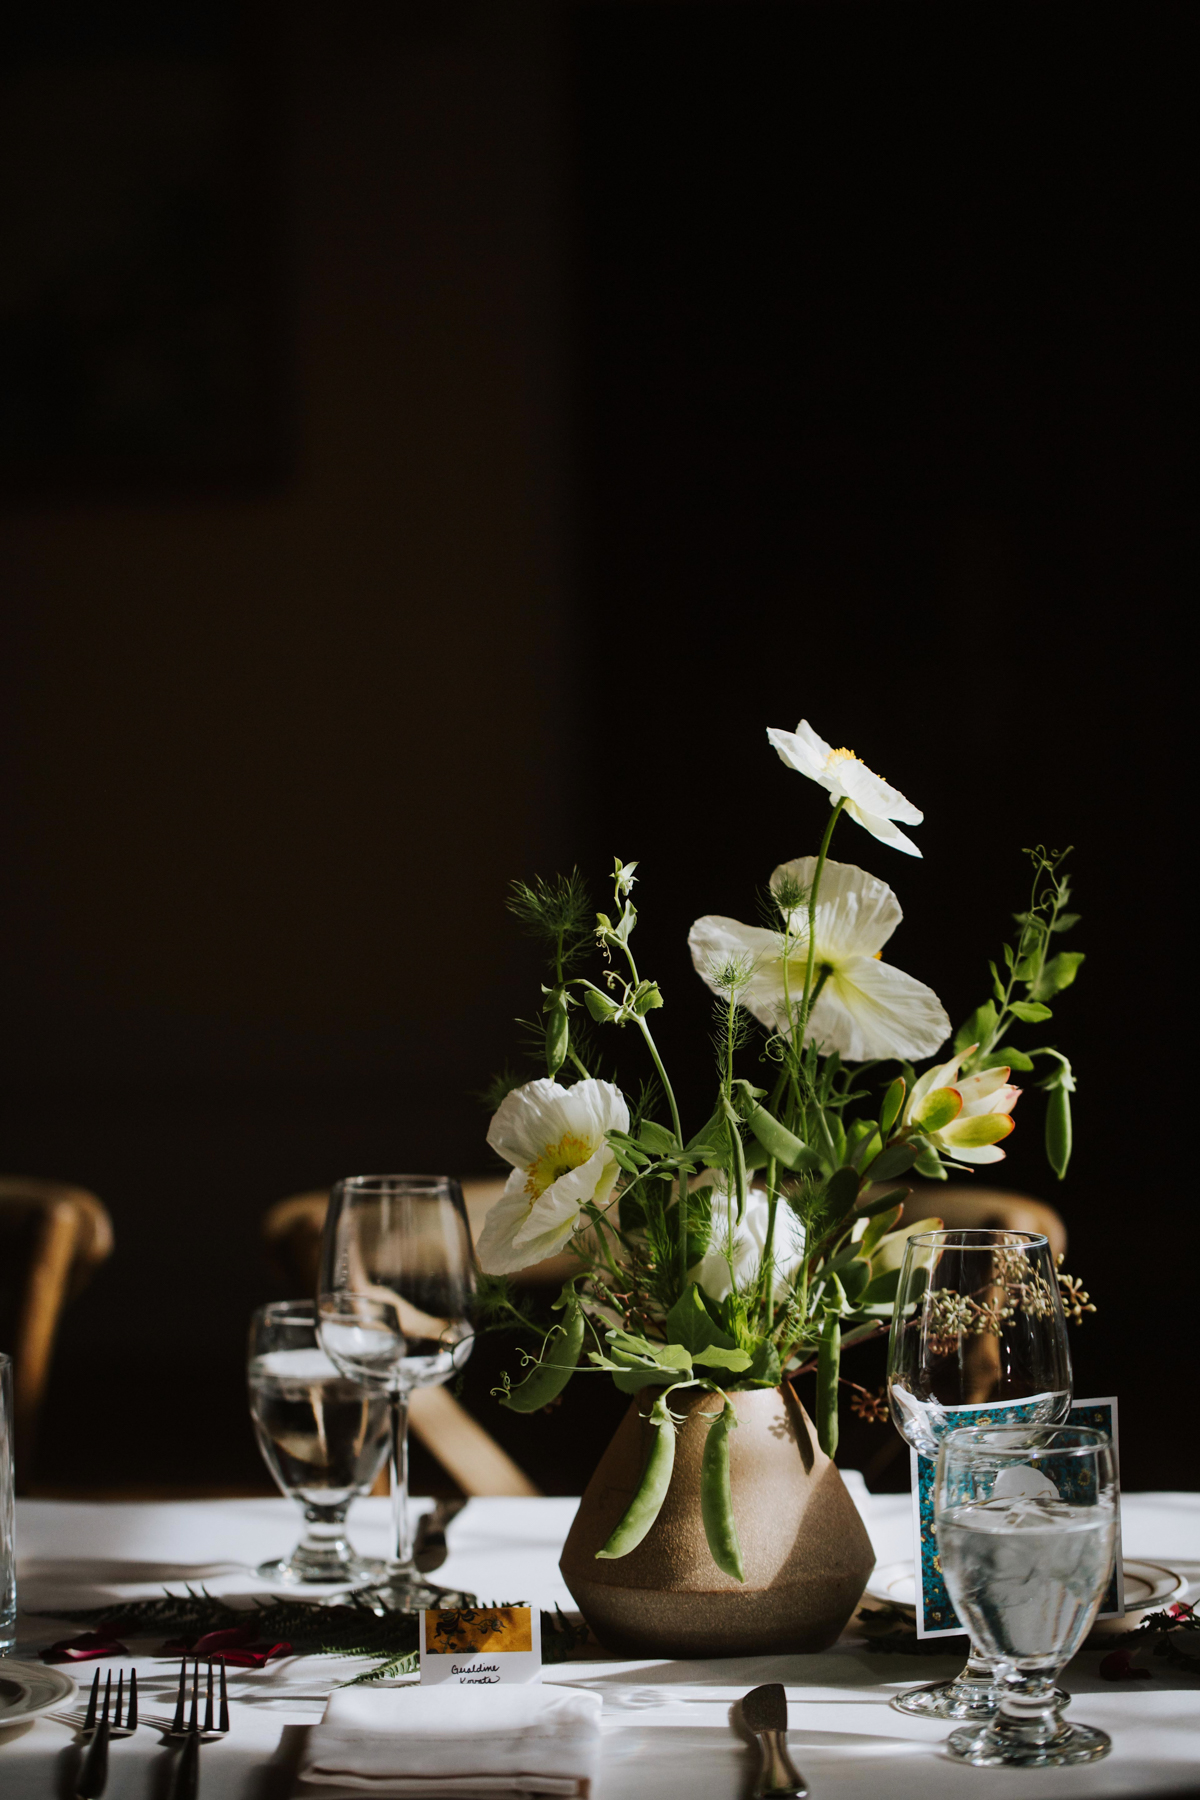 Spring centerpieces by Venn Floral with poppies, peas, and hellebores photographed by Andria Lo at The Berkely City Club, a gorgeous Julia Morgan building with eclectic antique decor and a Wes Anderson vibe.